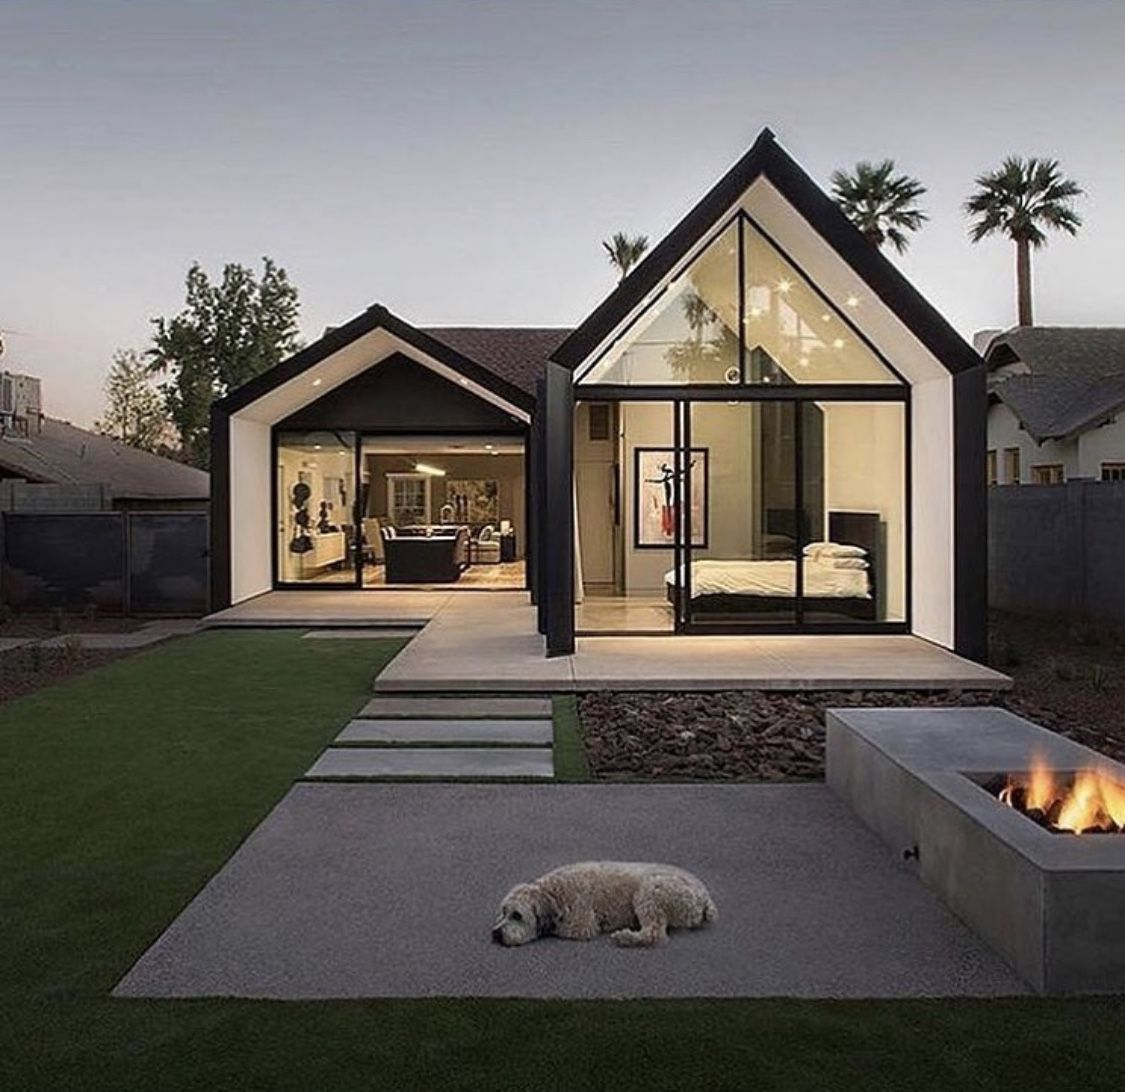 Pin by holo cactus on amazing home design pinterest architecture